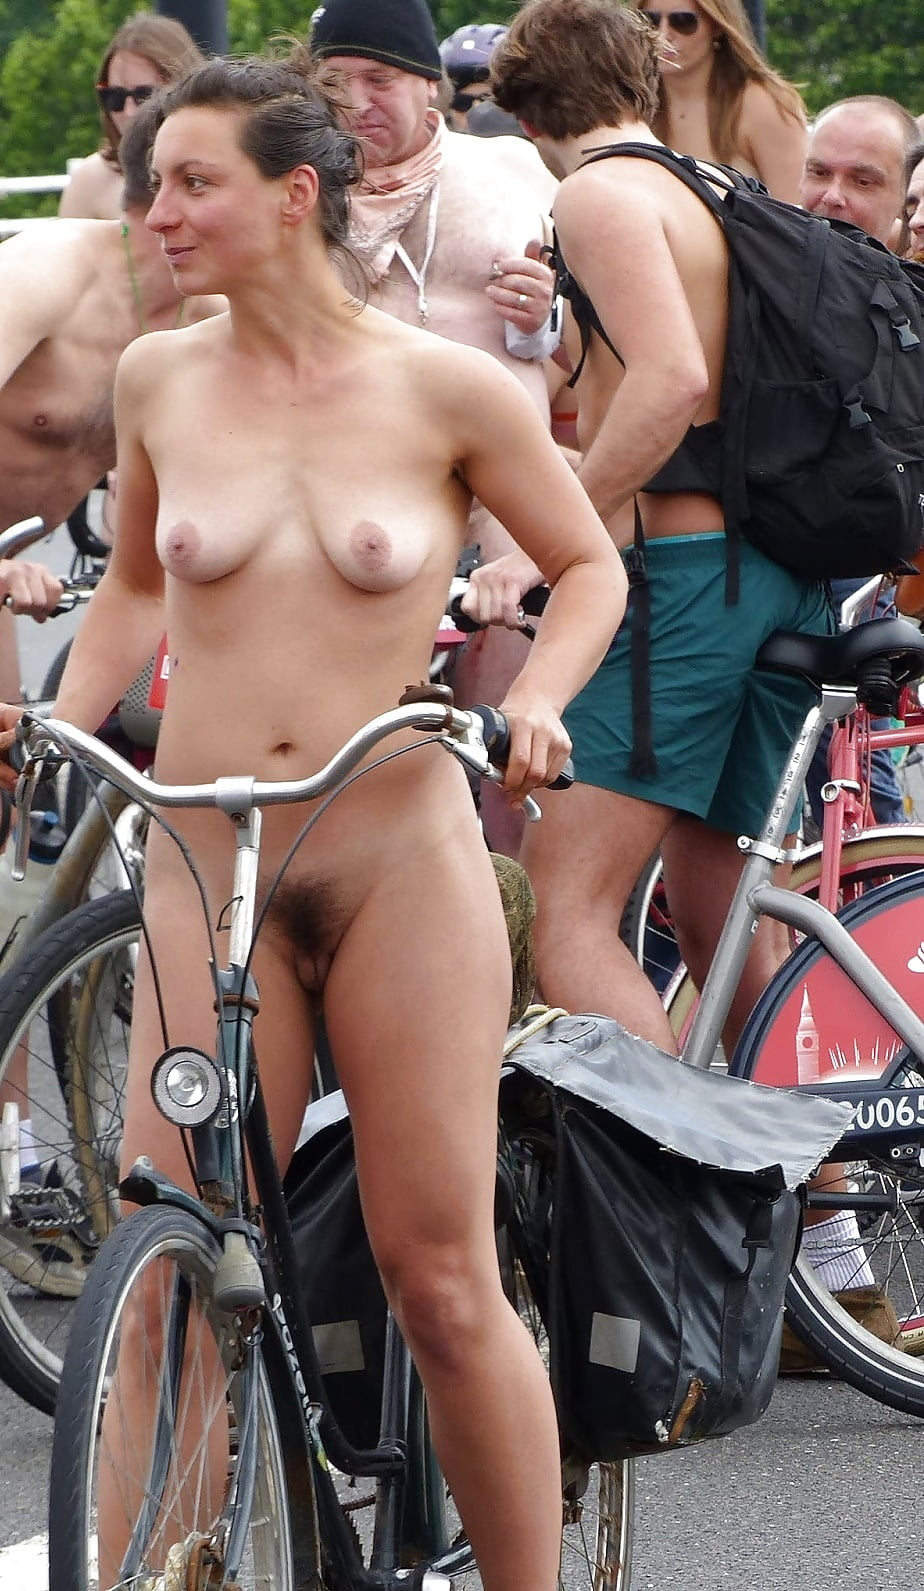 biker-like-old-women-naked-pics-amature-slutty-cunt